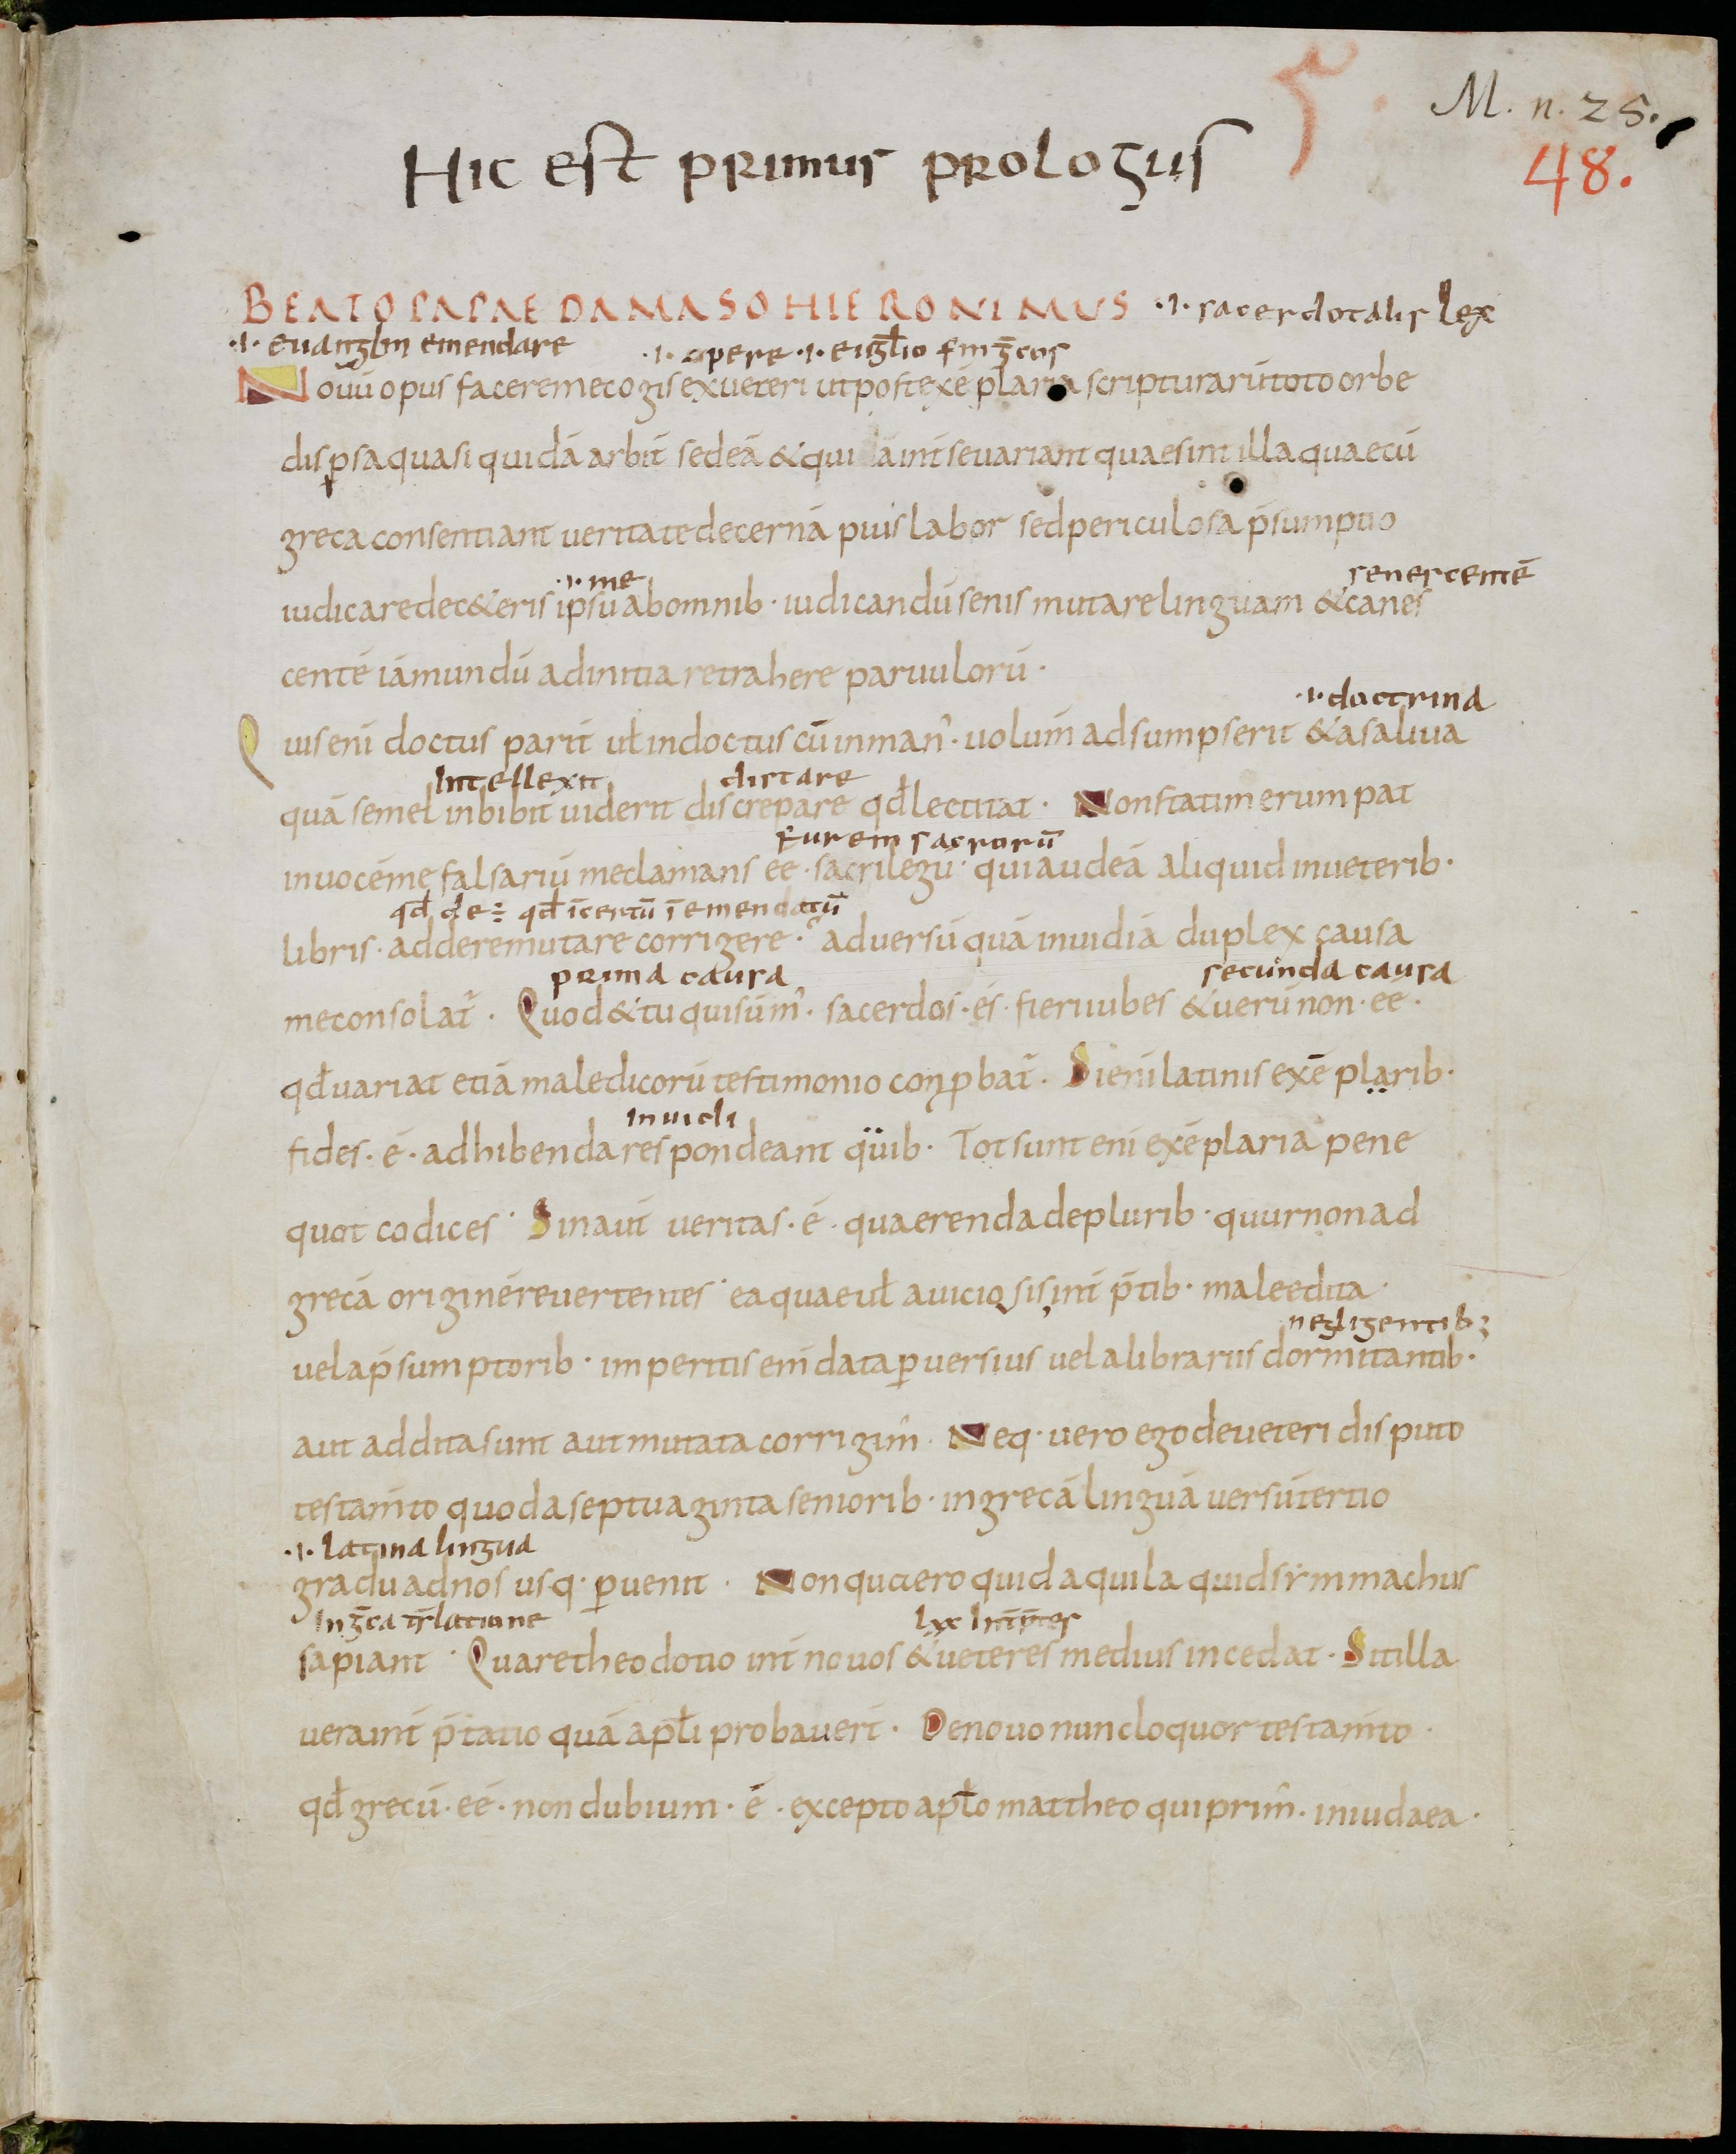 Letter from Jerome to Pope Damasus IV on the correction of the Bible, in Codex Sangallensis 48